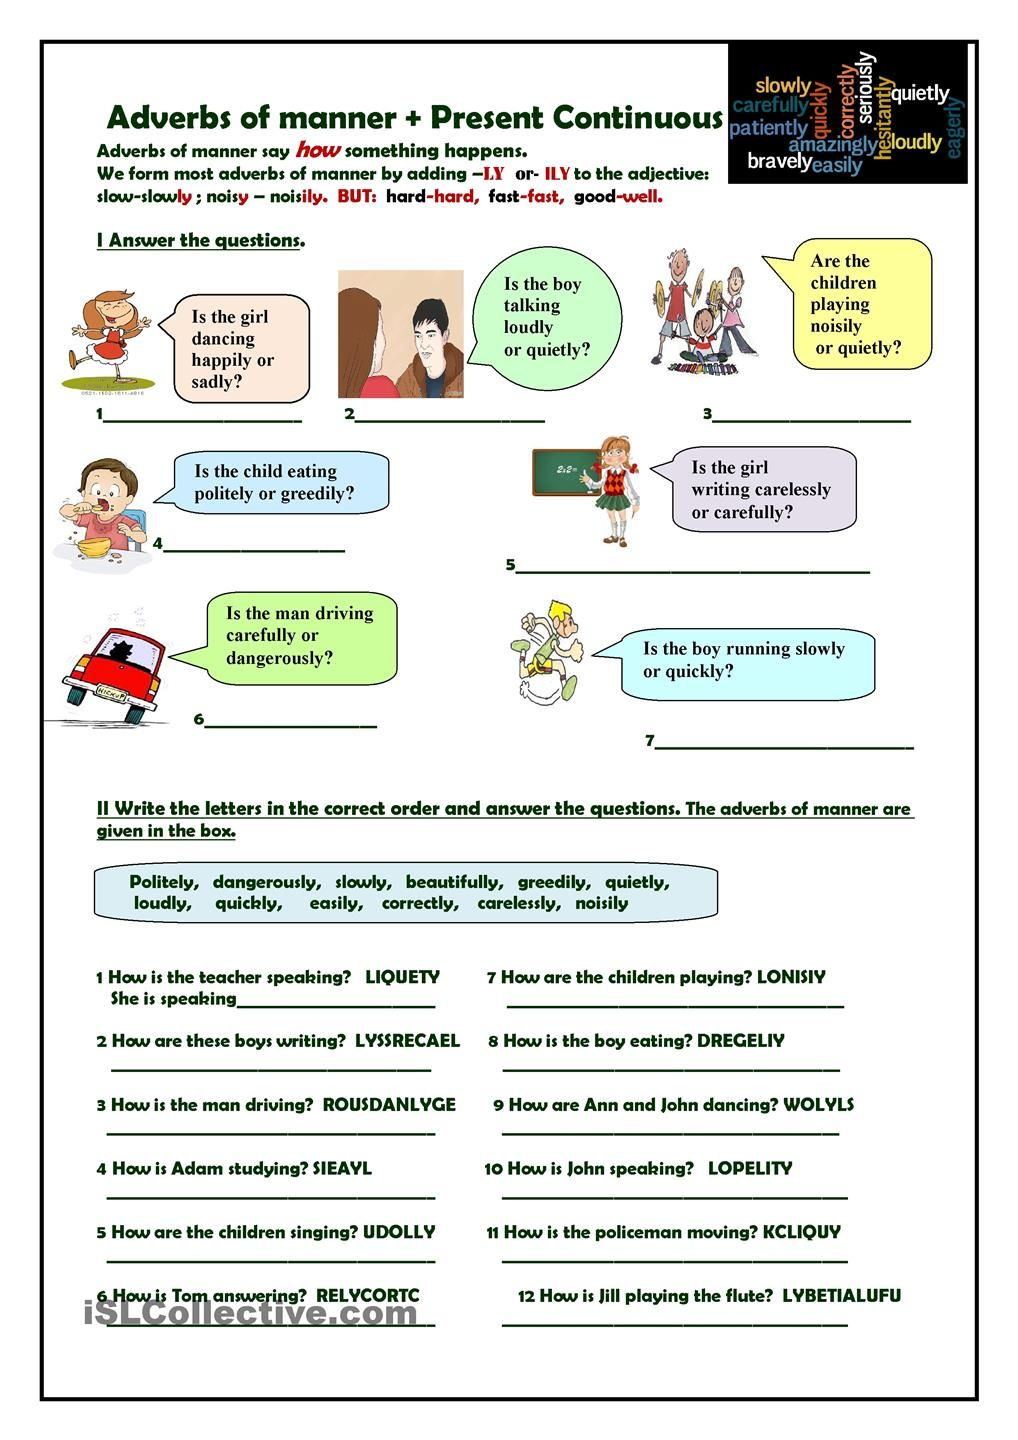 worksheet adverbs of manner pdf - Buscar con Google  household  alphabet worksheets, learning, worksheets for teachers, education, and grade worksheets Worksheets Adverbs 1440 x 1018